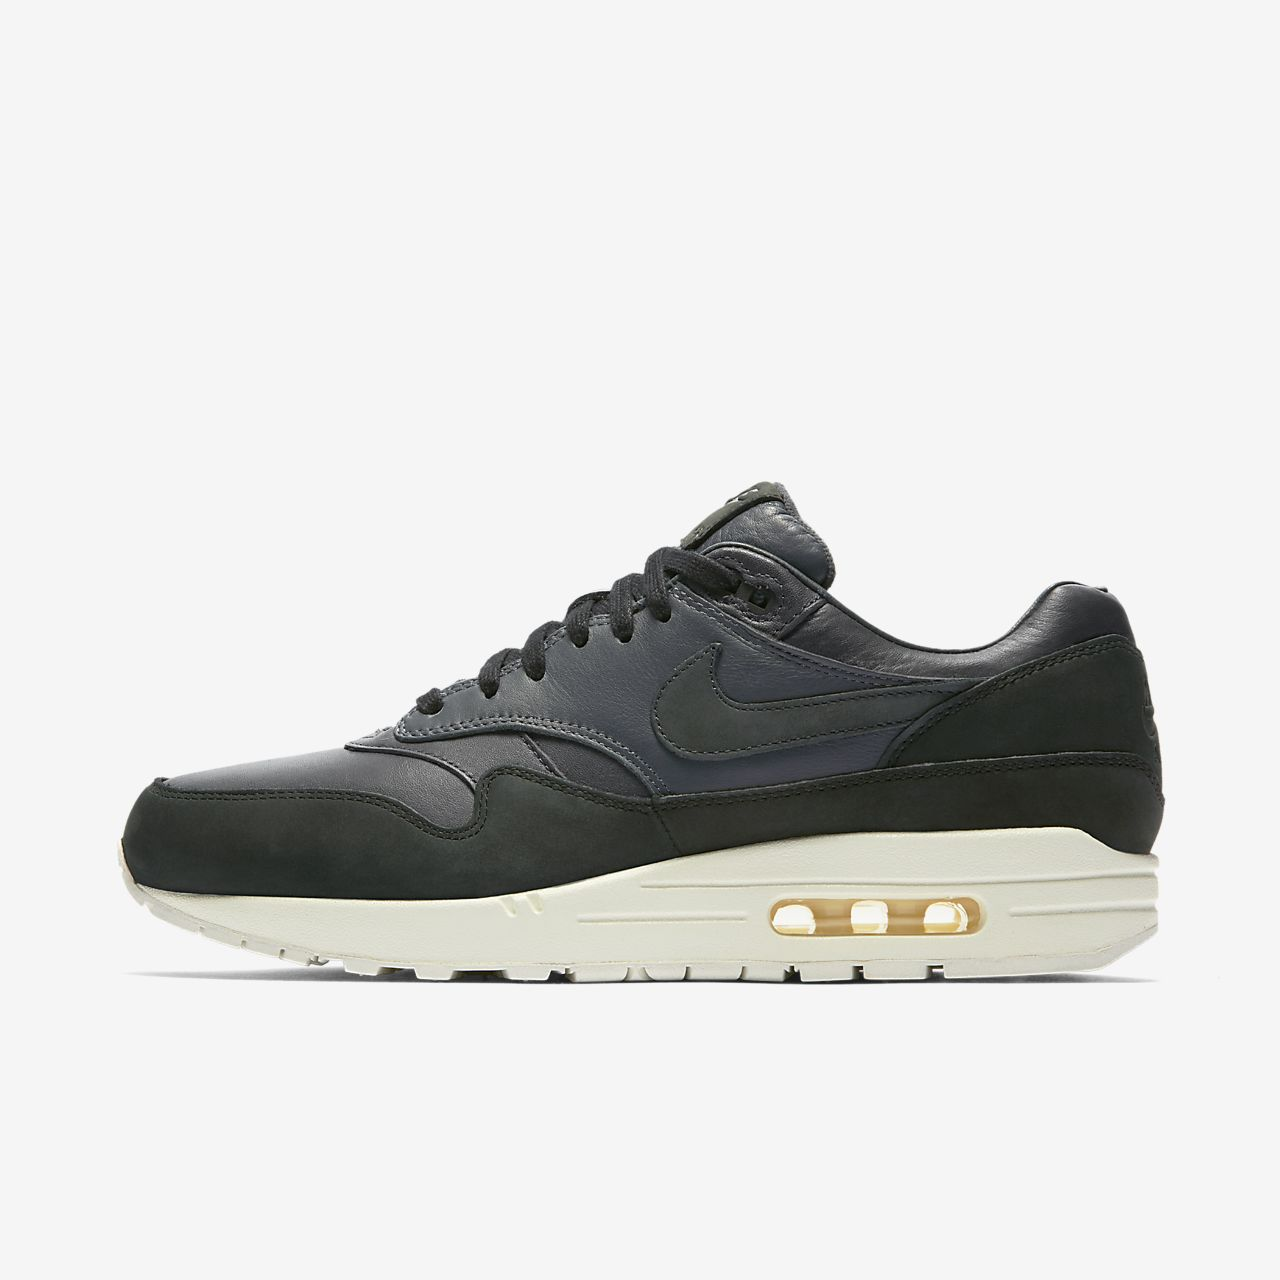 NikeLab Air Max 1 Pinnacle 男子运动鞋